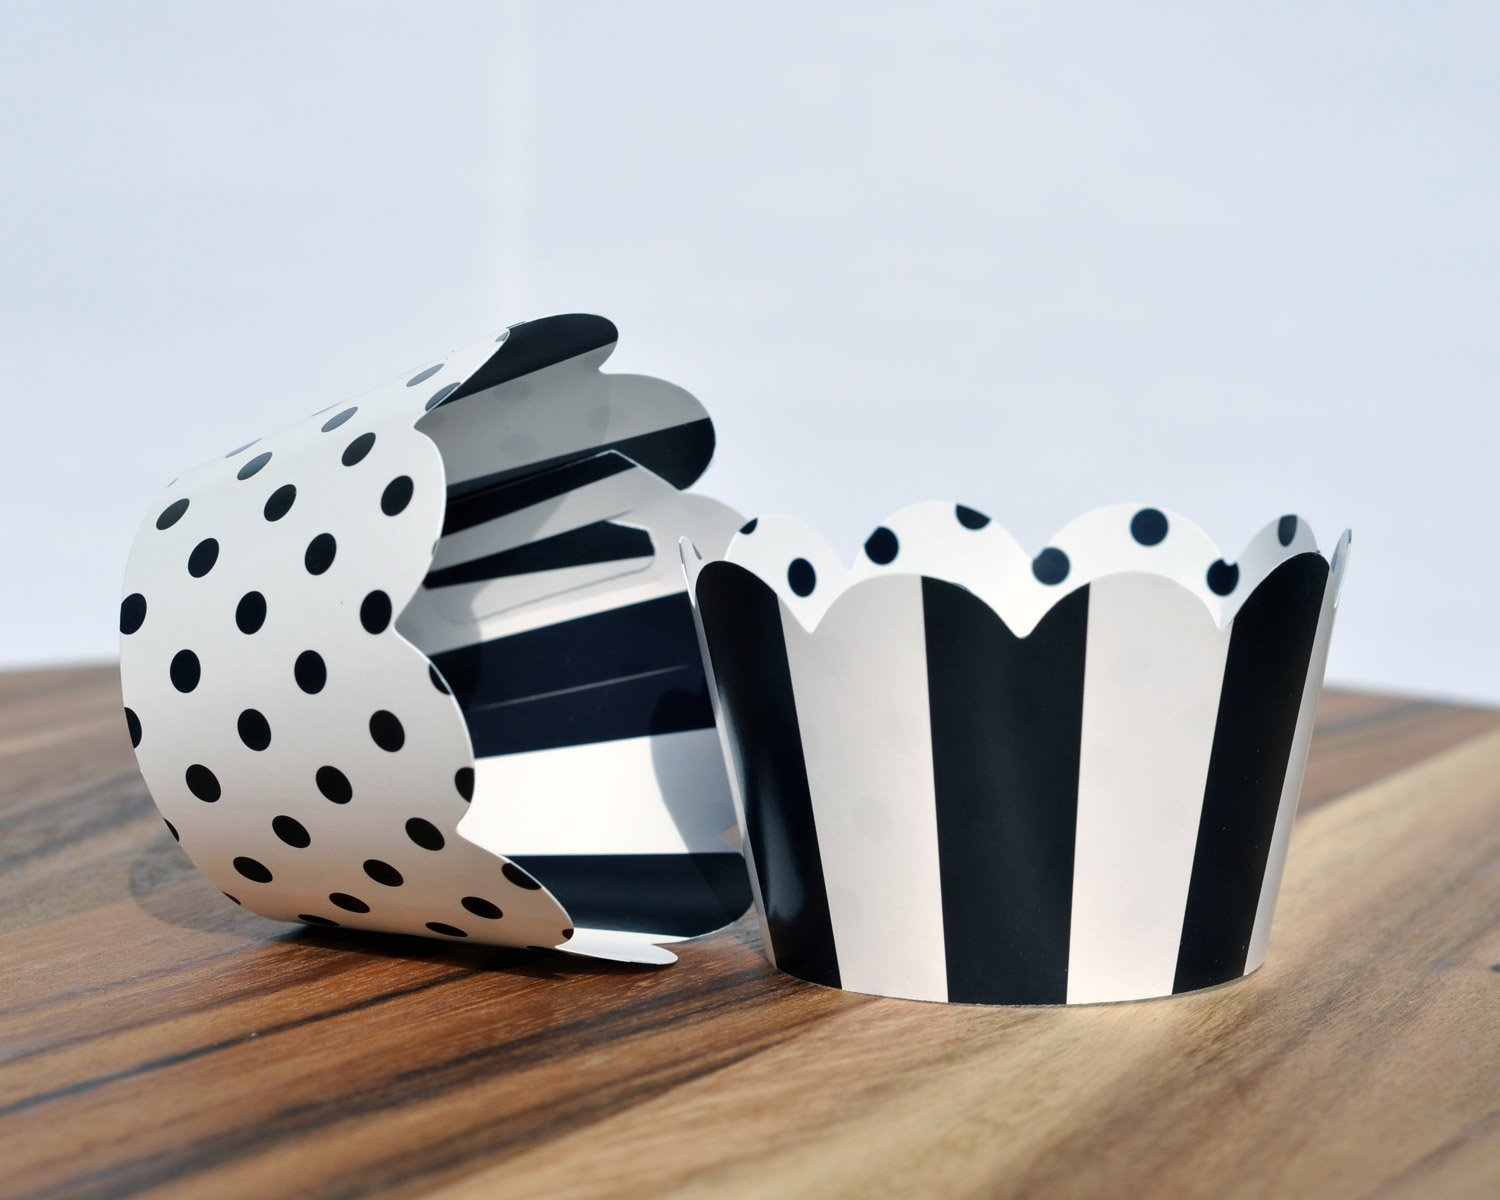 Black and White Cupcake Wrappers for Weddings, Graduations, Kids and Adult Birthday Parties, Baby Showers. Set of 24 Reversible Cup Cake Holder Wraps with Polka Dots and Stripes. Black, White by Toula Products (Image #2)